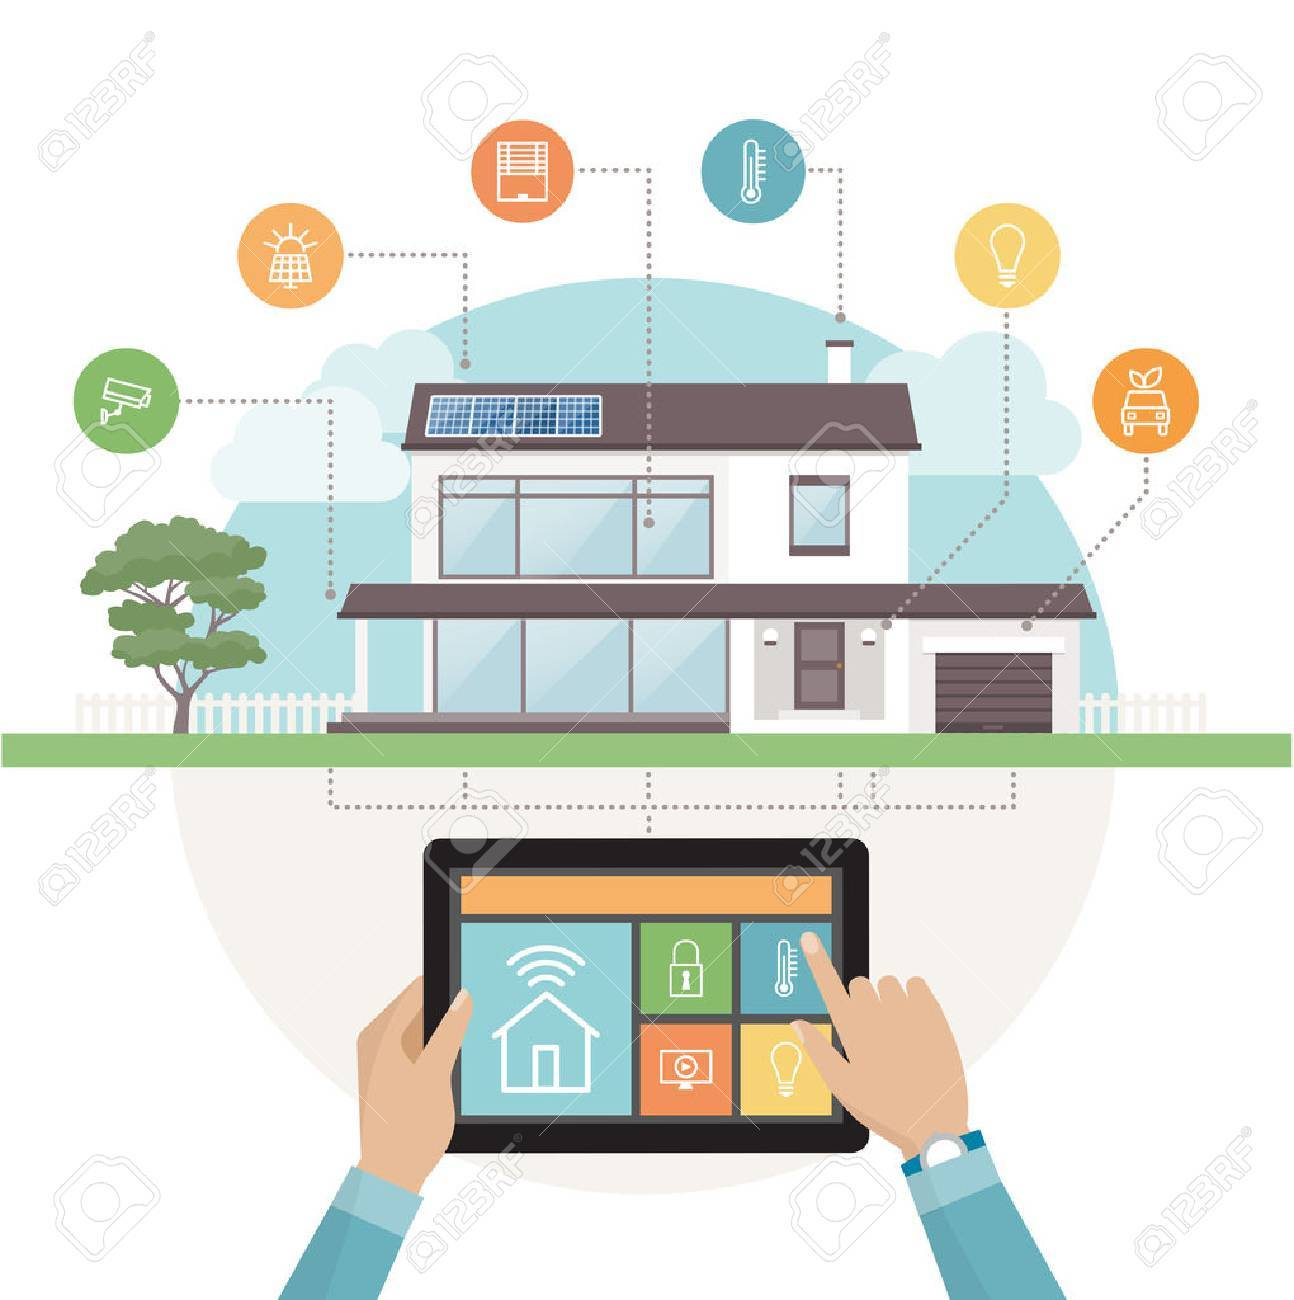 Smart House smart house system and mobile app on a tablet contemporary